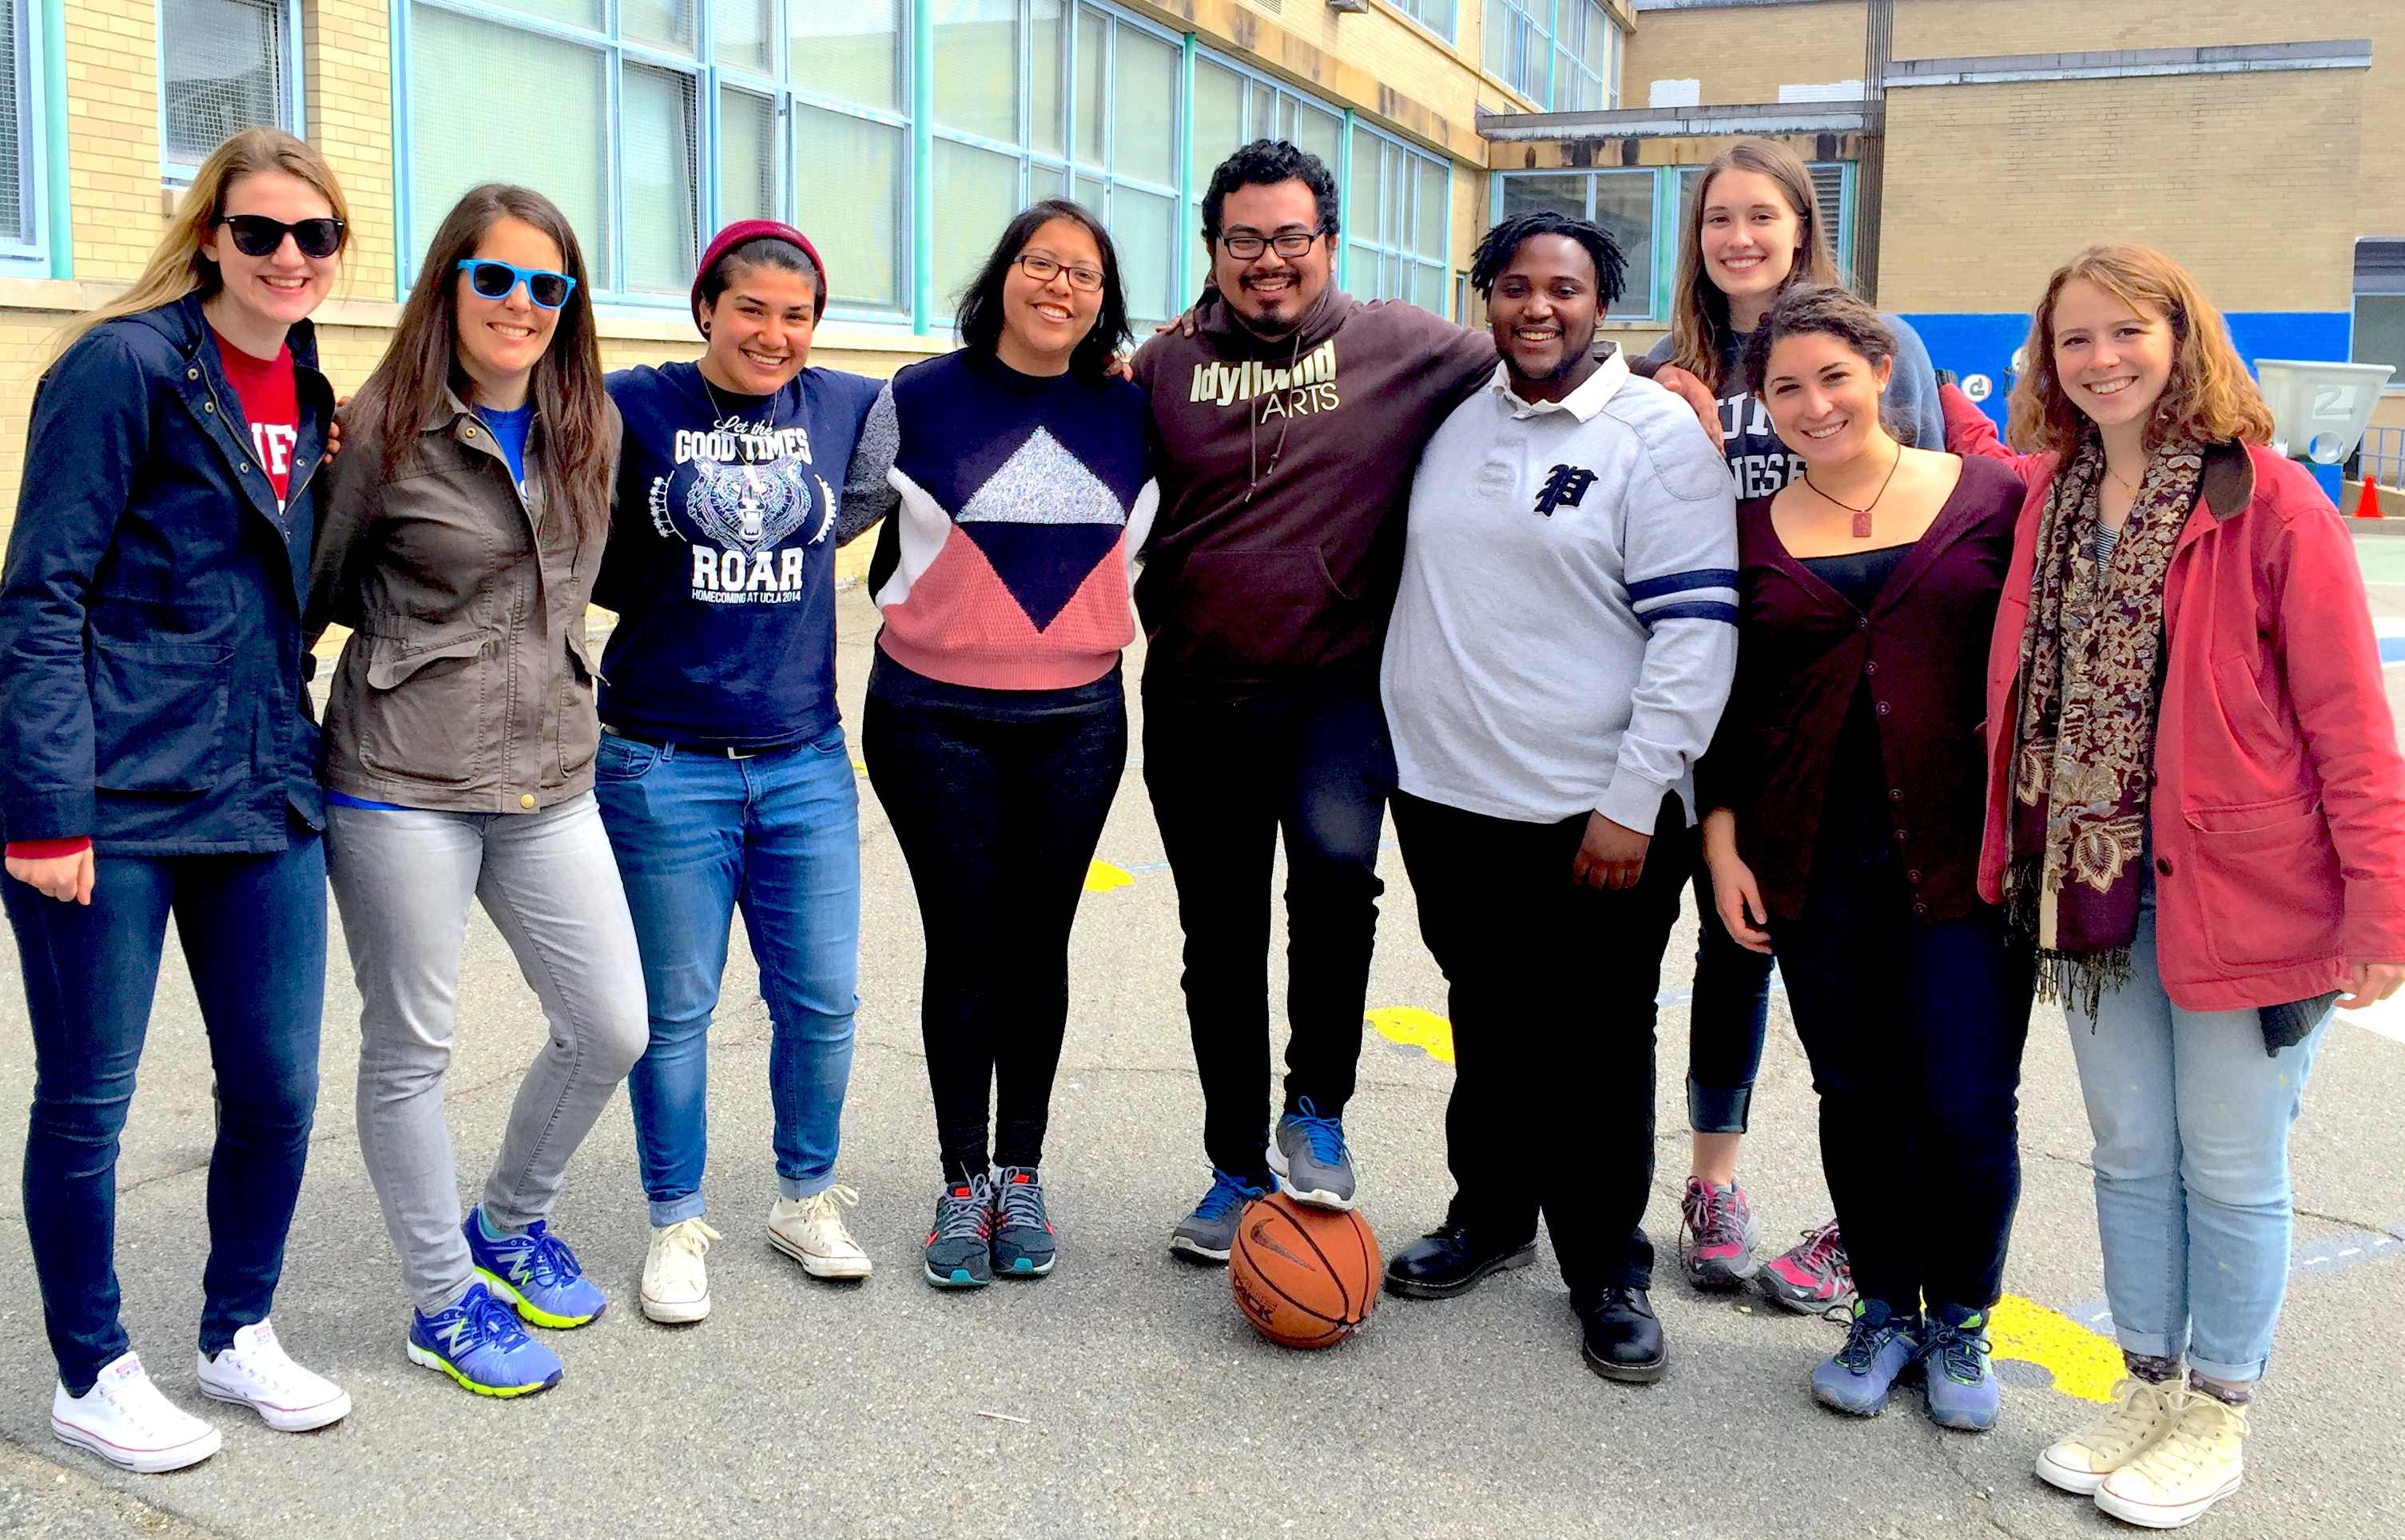 Group of fellows posing together in a schoolyard.